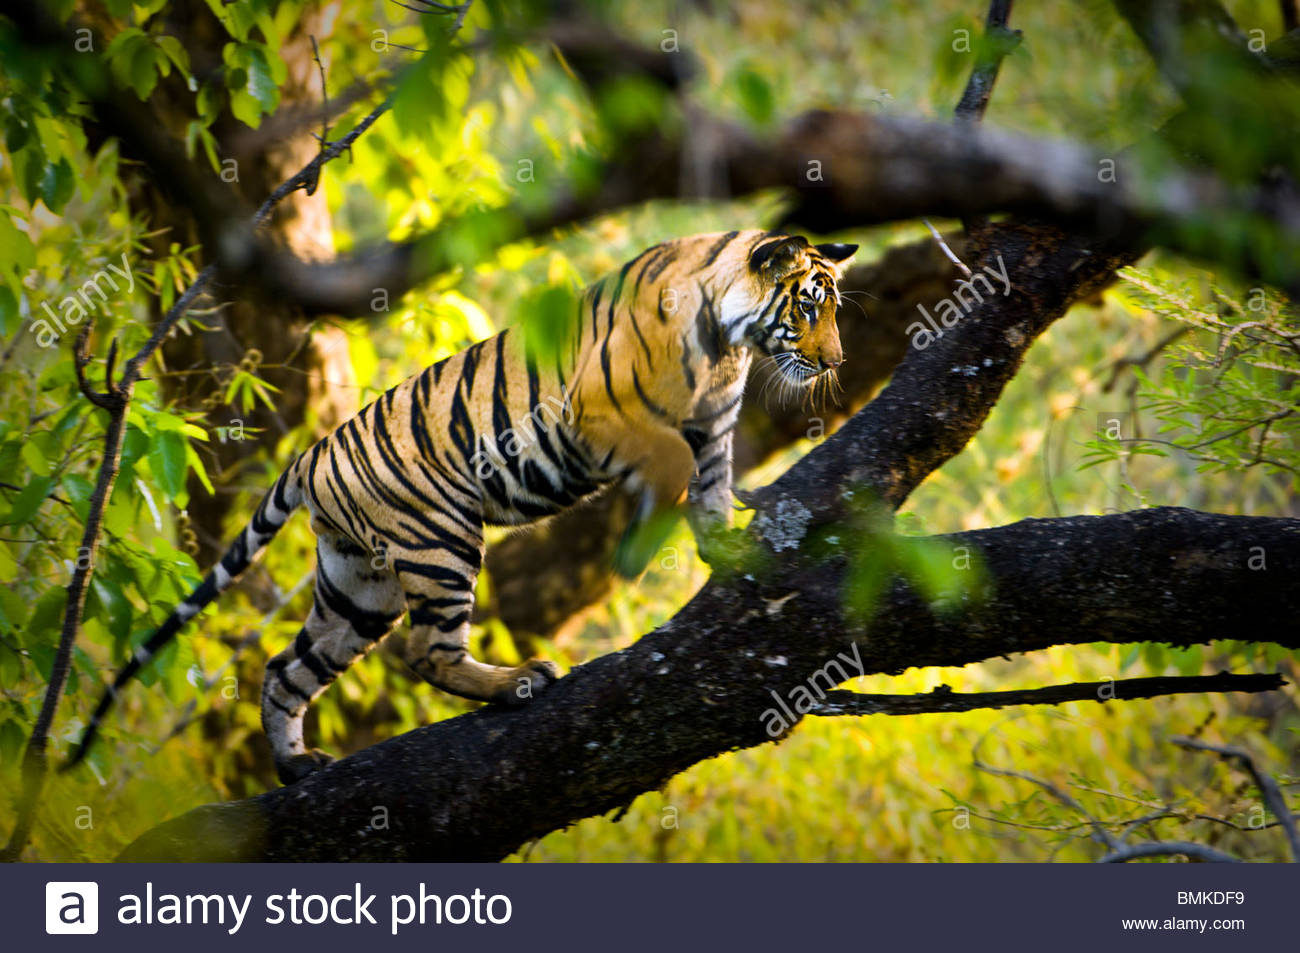 Adolescent tigre du Bengale (environ 15 mois) l'ascension d'une arborescence. Bandhavgarh NP, Madhya Pradesh, Photo Stock